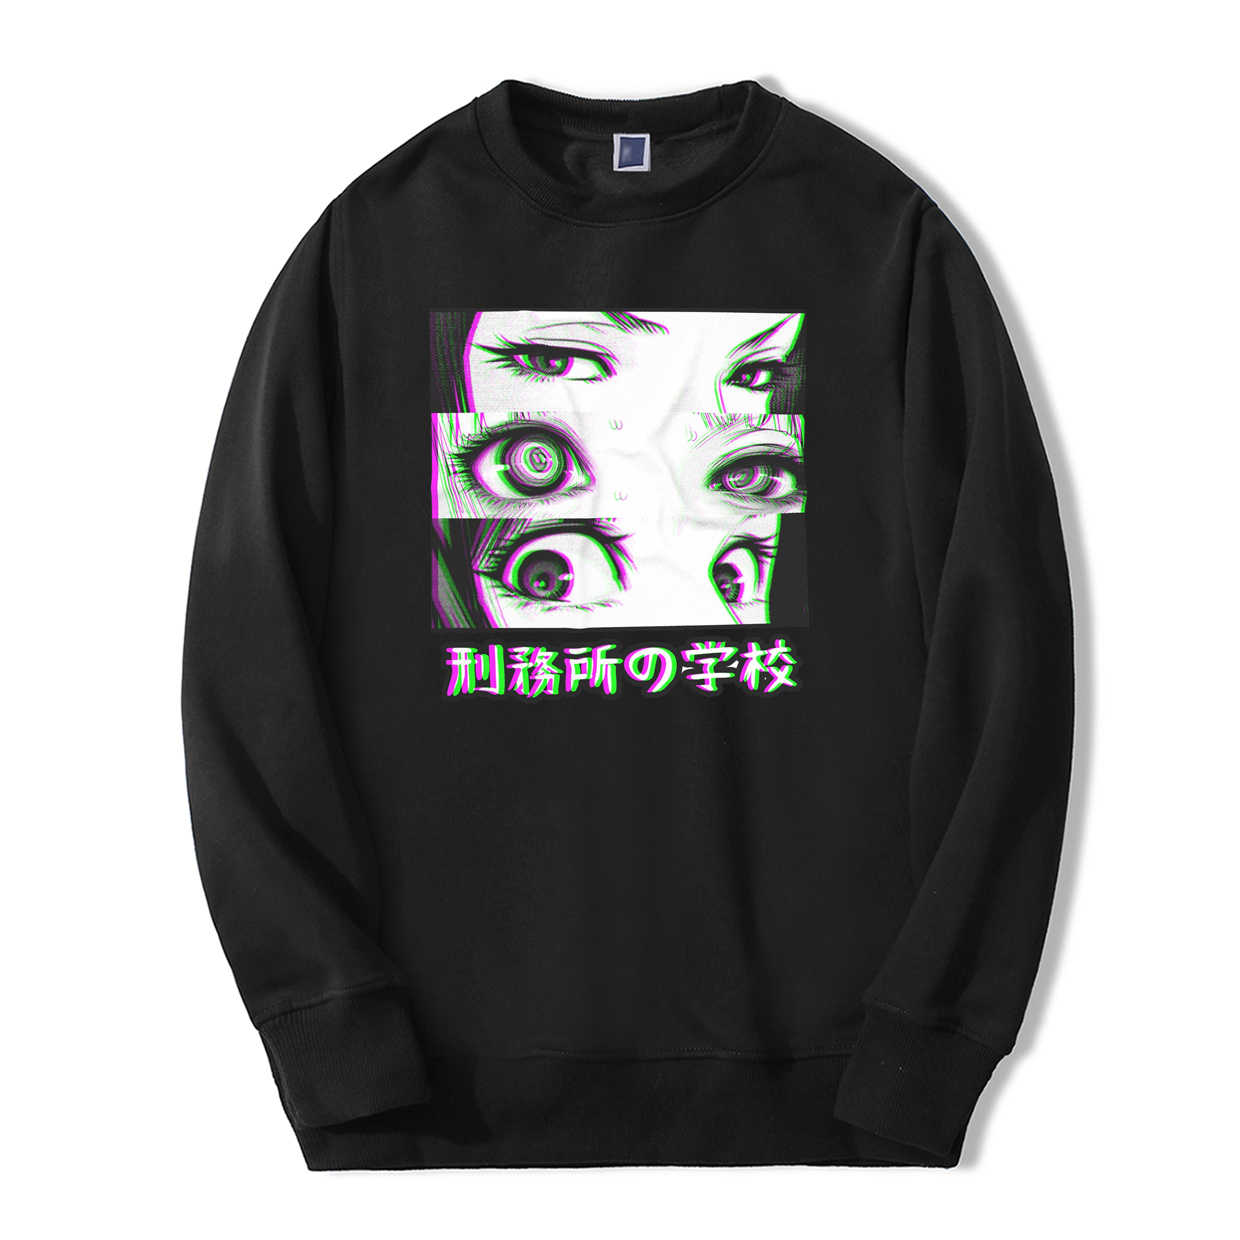 Japan Anime Gevangenis School Ogen Sad Mannen Sweatshirt Hoodies 2019 Lente Winter Hot Koop Casual Loose Fit Hip Hop Fashoin trui